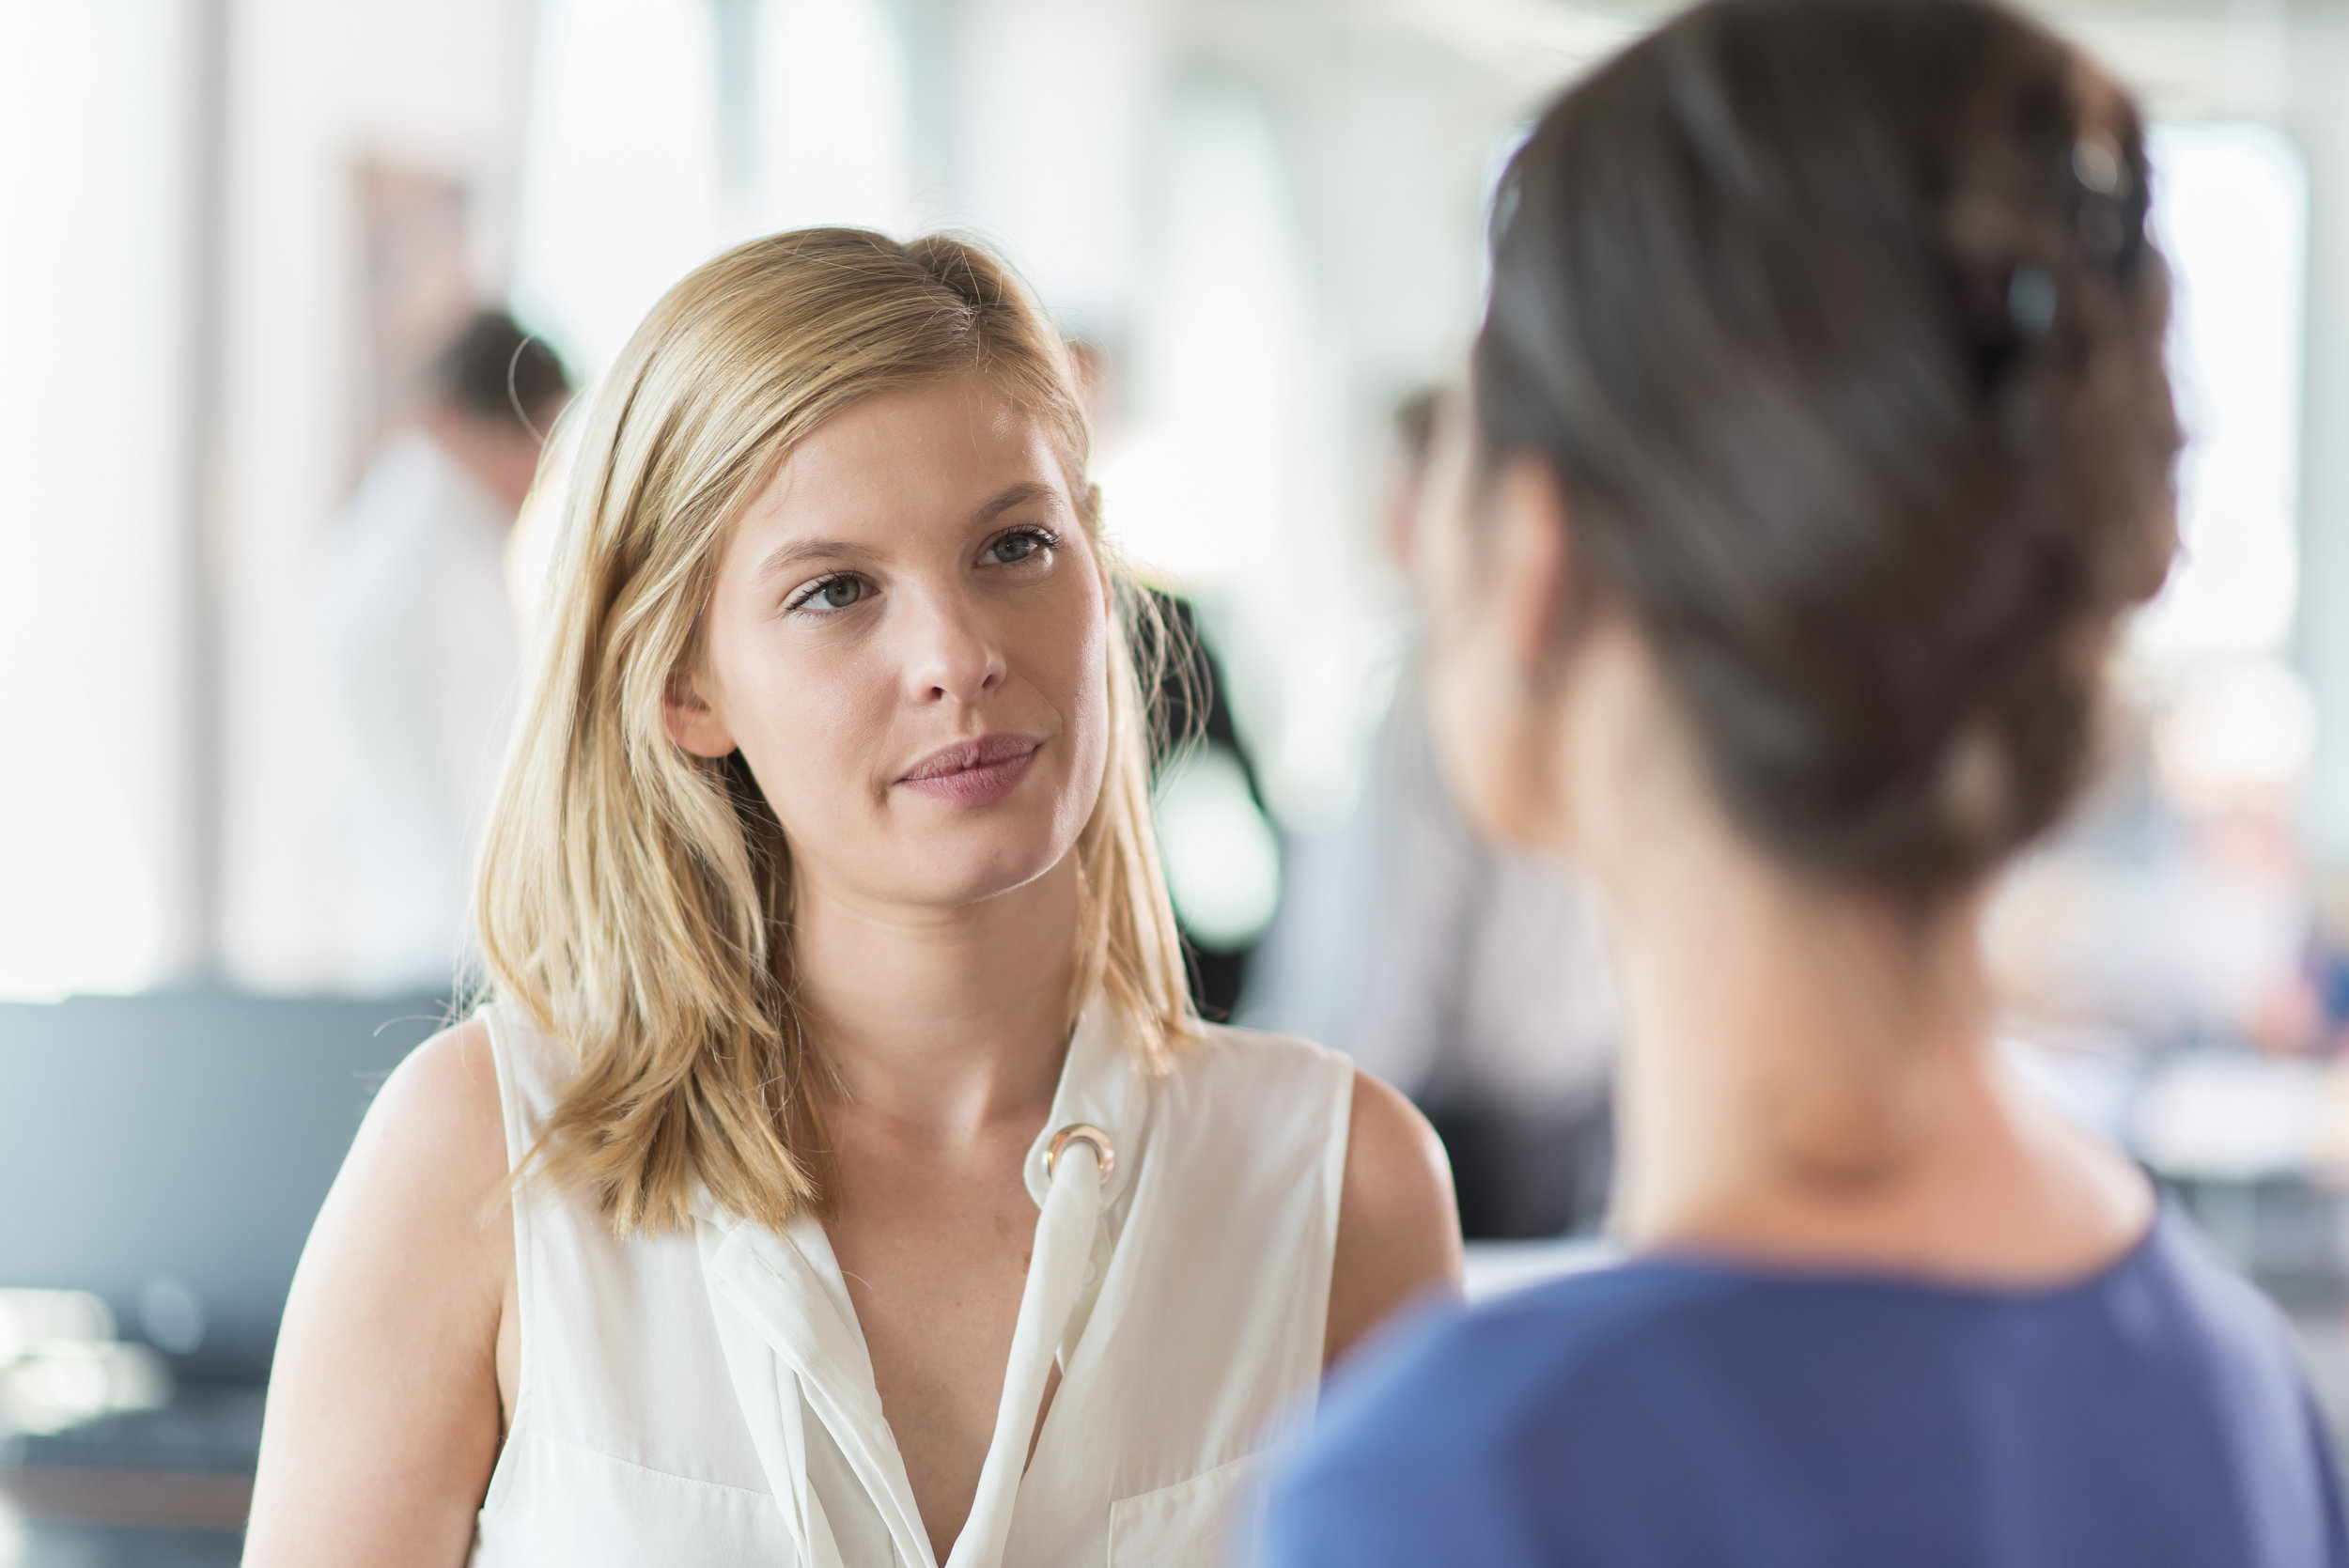 active listening skills - tips and advice